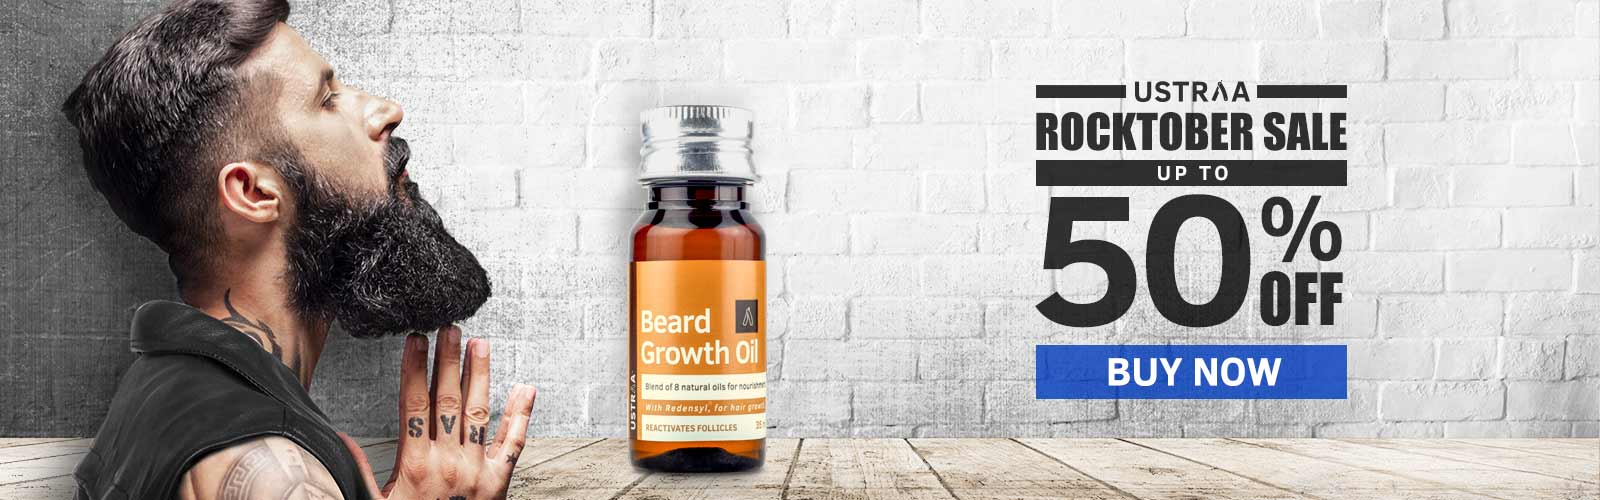 Beard growth oil upto 50% off